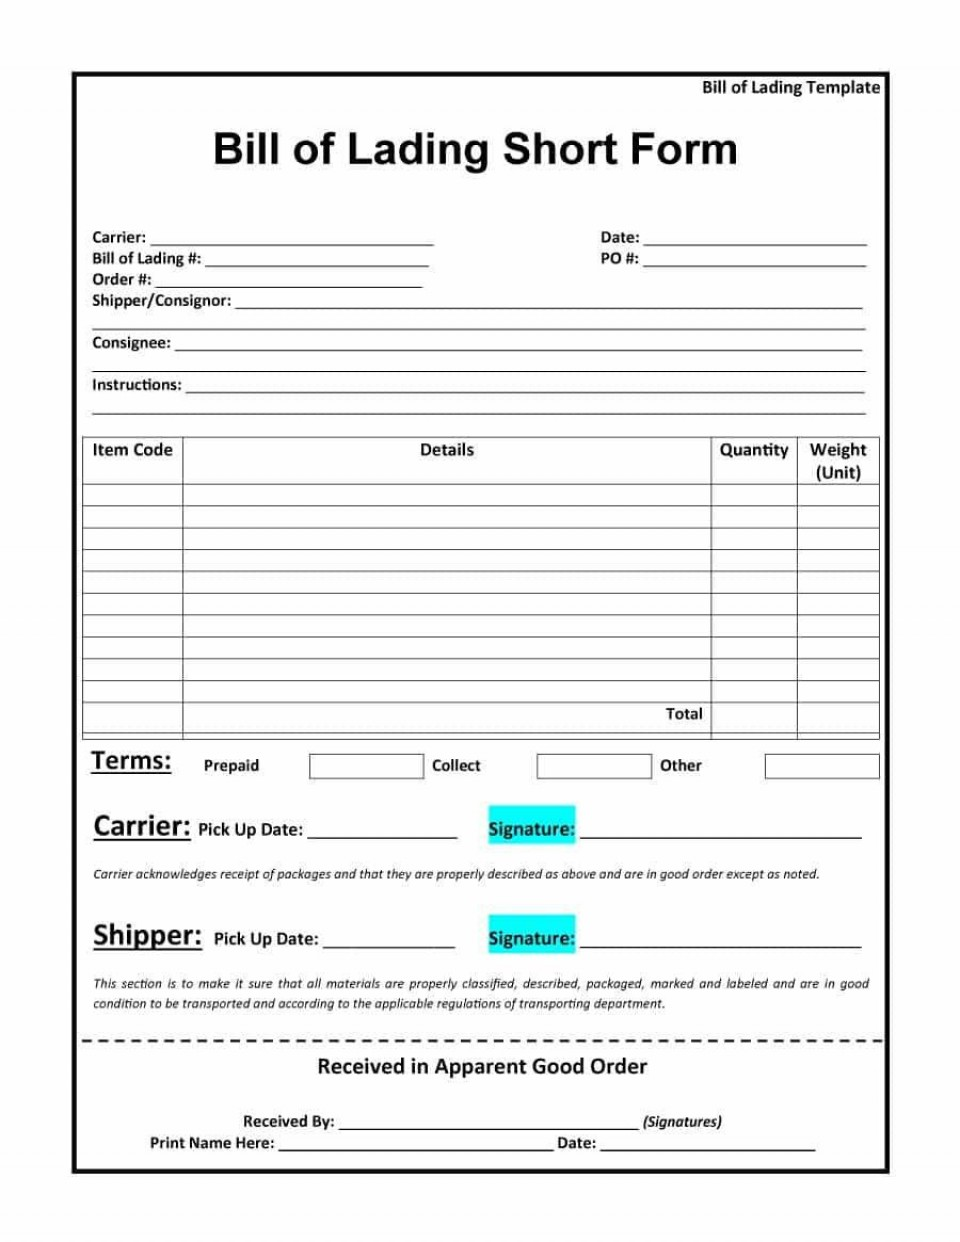 009 Staggering Bill Of Lading Form Word Highest Quality  Document Short House Template960